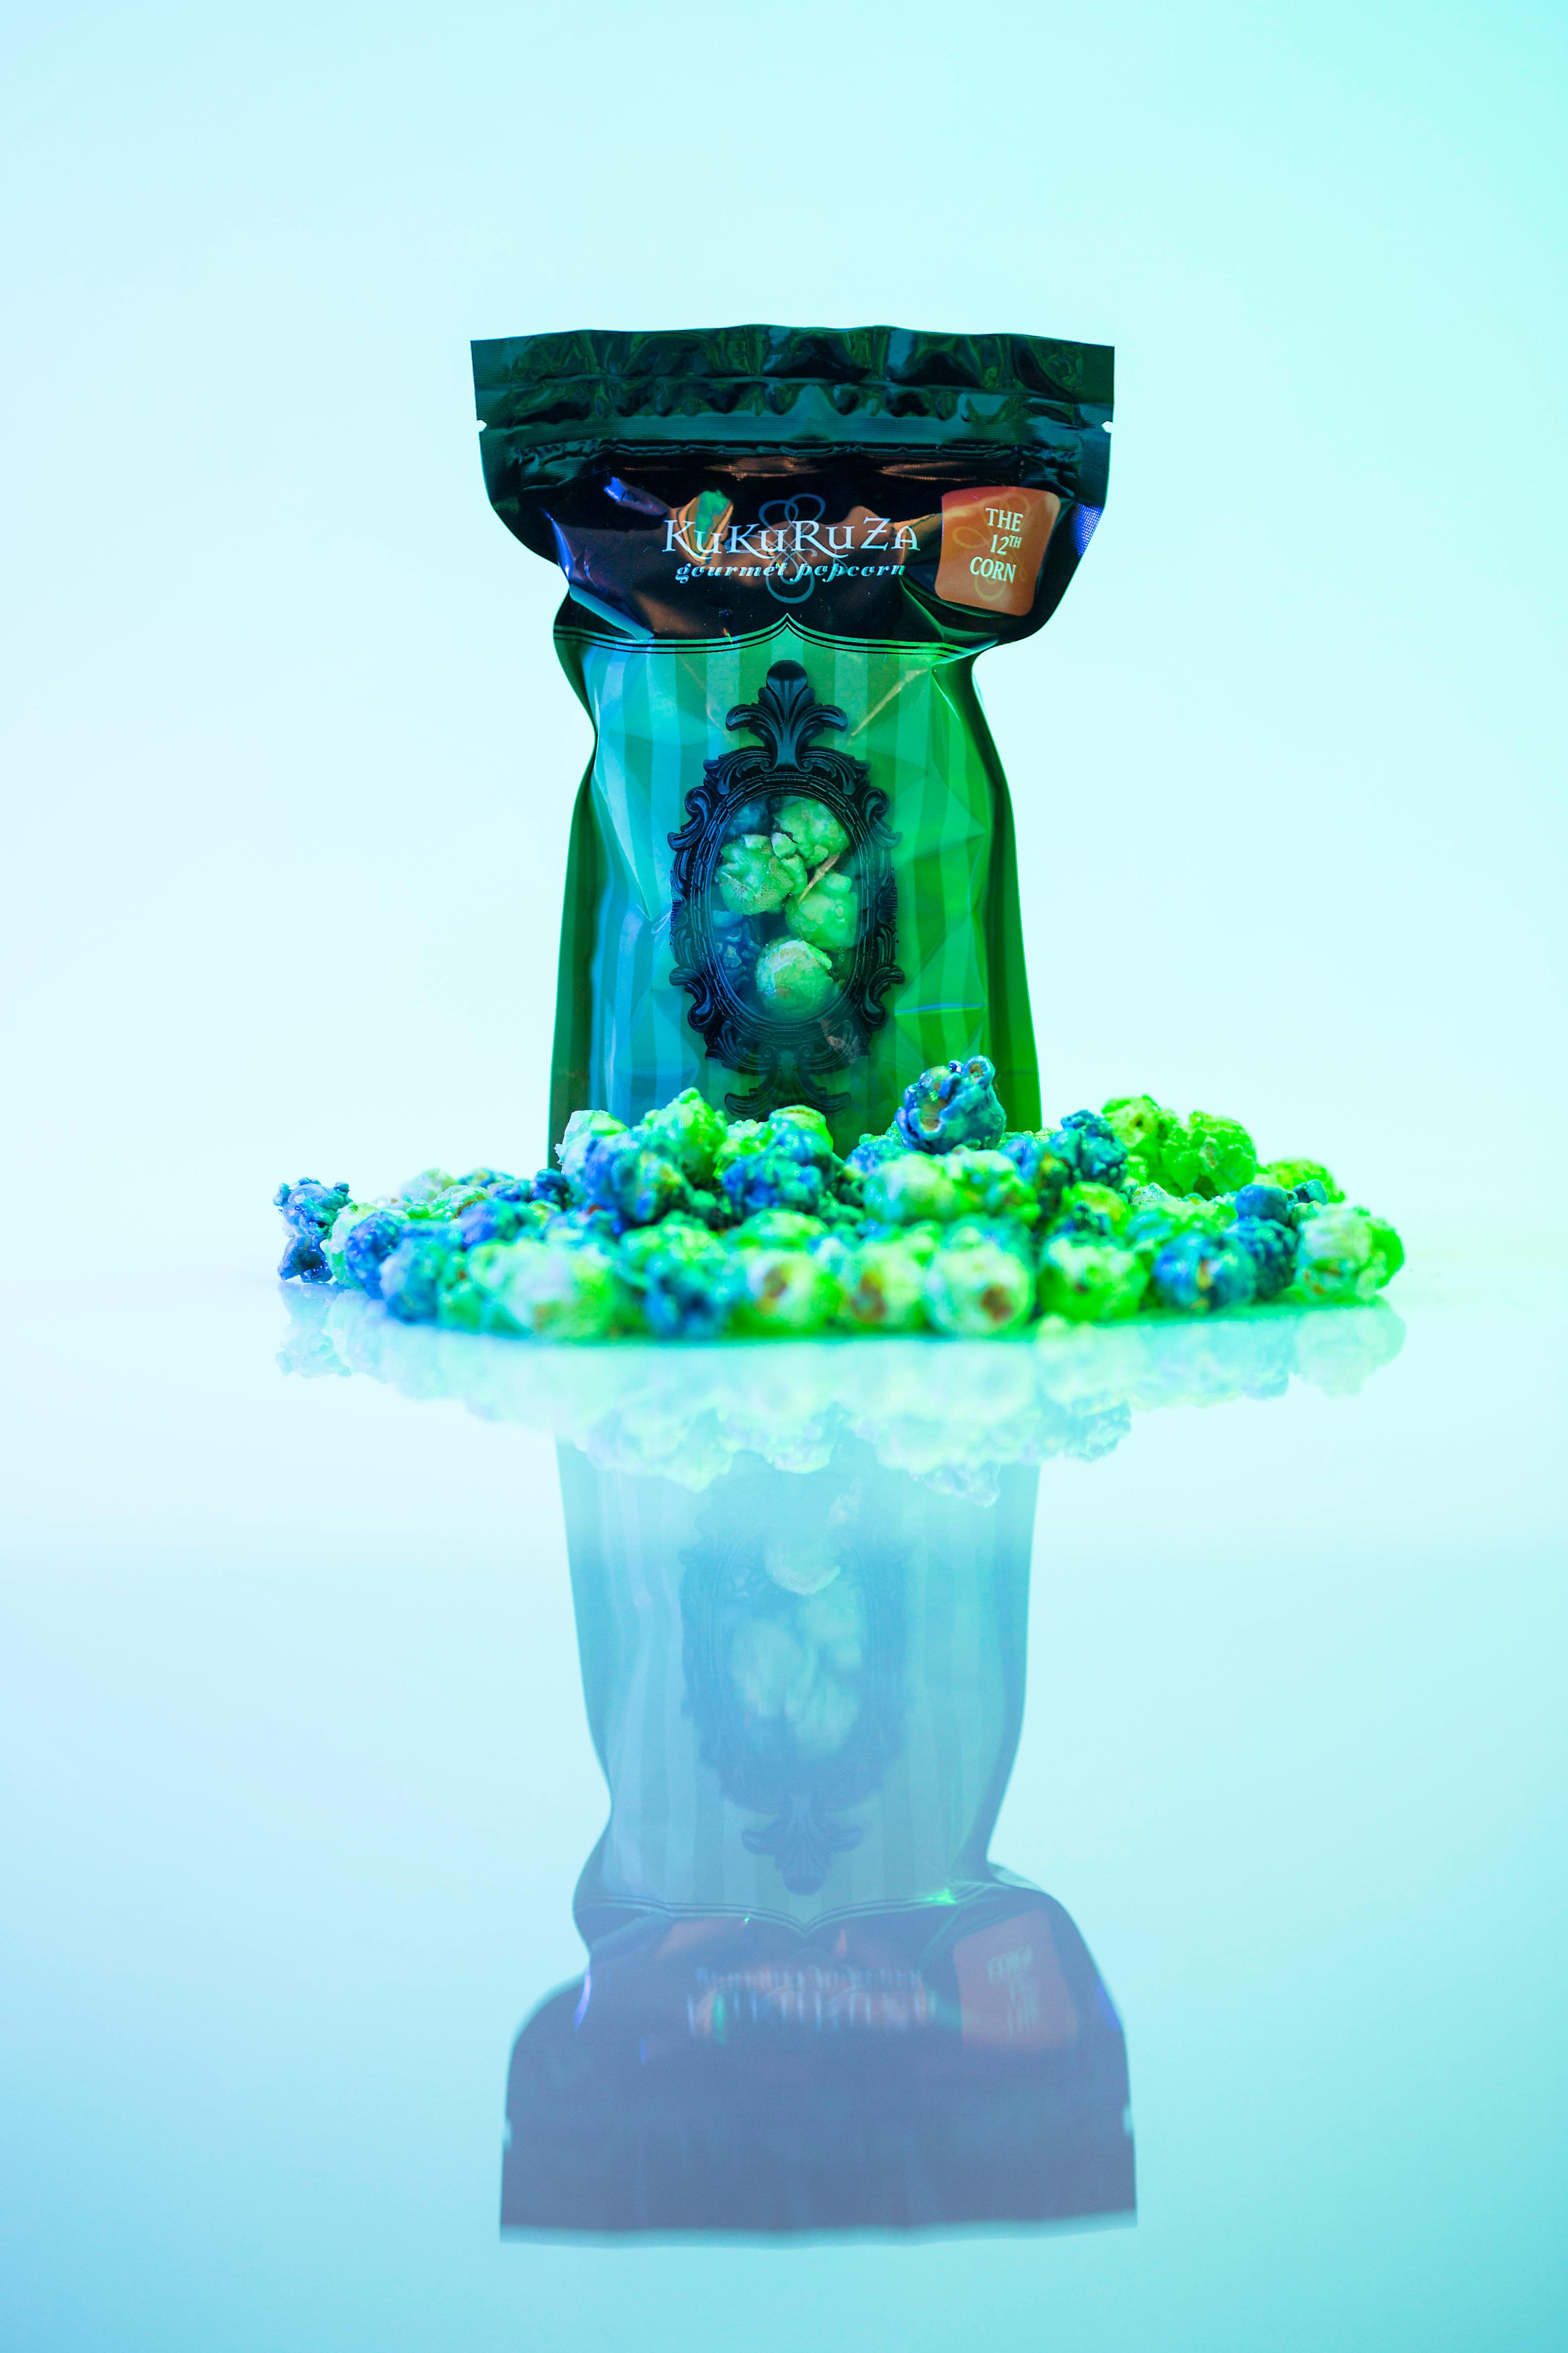 As the 2017 Seahawks season is now upon us, we thought it we be great to share a bunch of Seahawks-themed goodies that we found from local bakeries that you can buy and bring to your next tailgate party. Gourmet popcorn maker KuKuRuZa makes the 12th Corn, a lime and blueberry treat that's gluten free and vegan friendly! (Sy Bean / Seattle Refined)